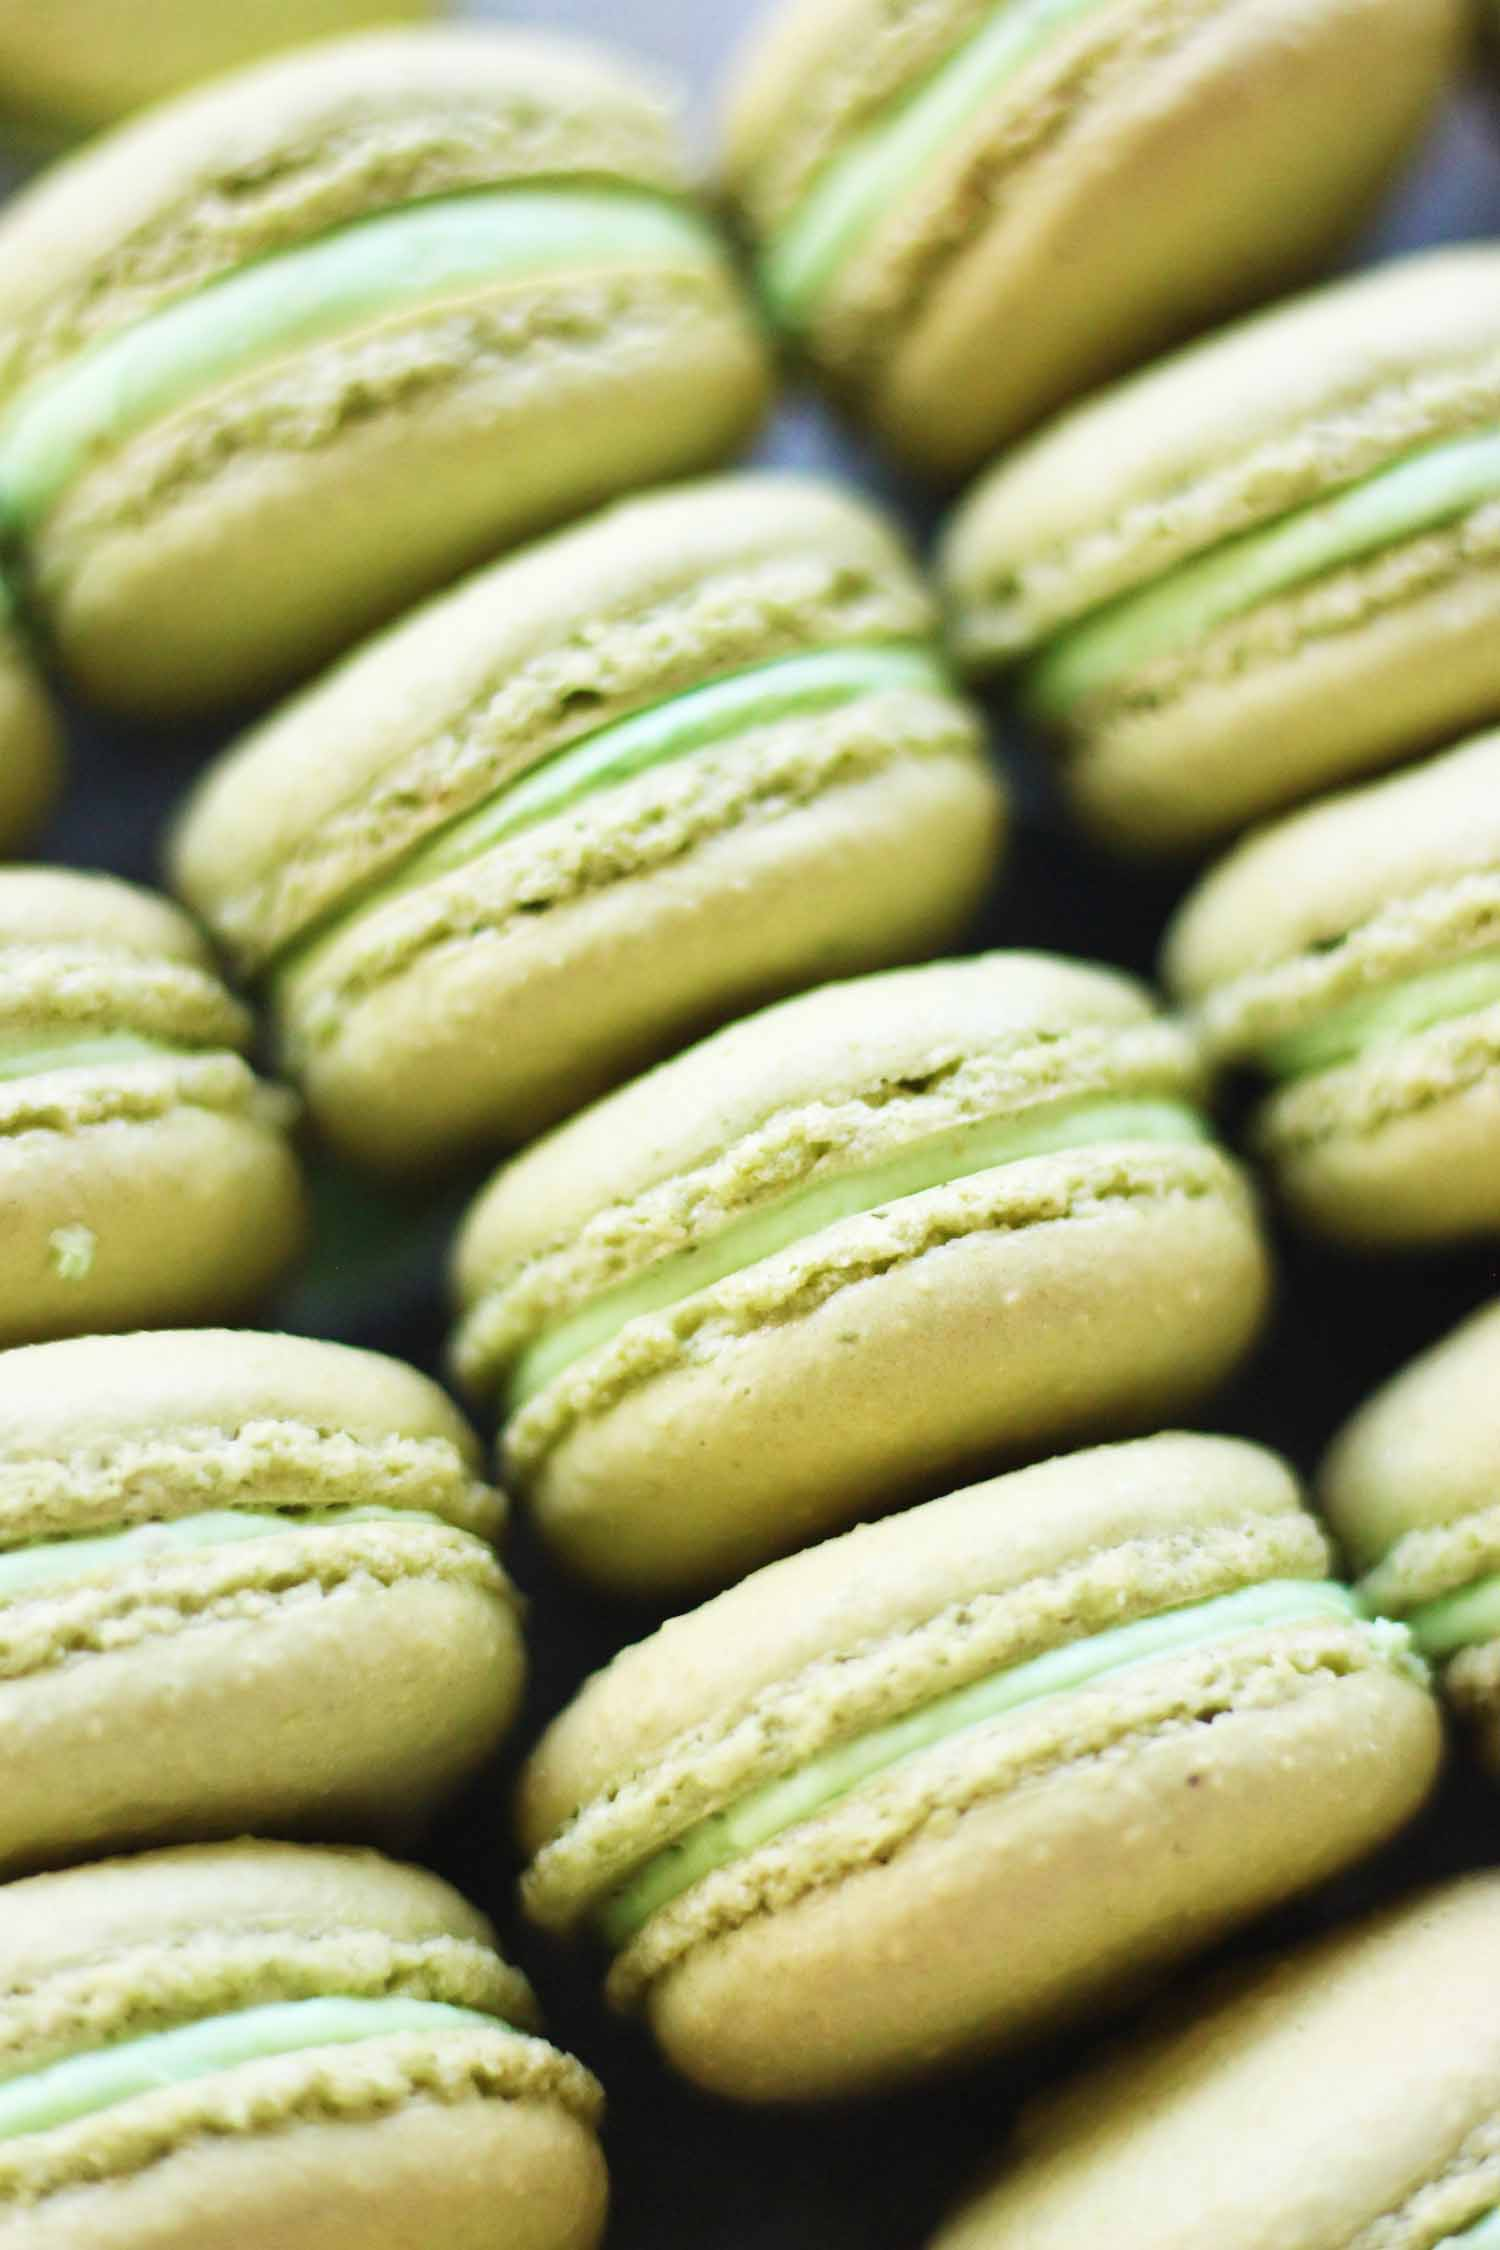 Pistachio Macarons by French Bakery Cafe Pierrot in NJ